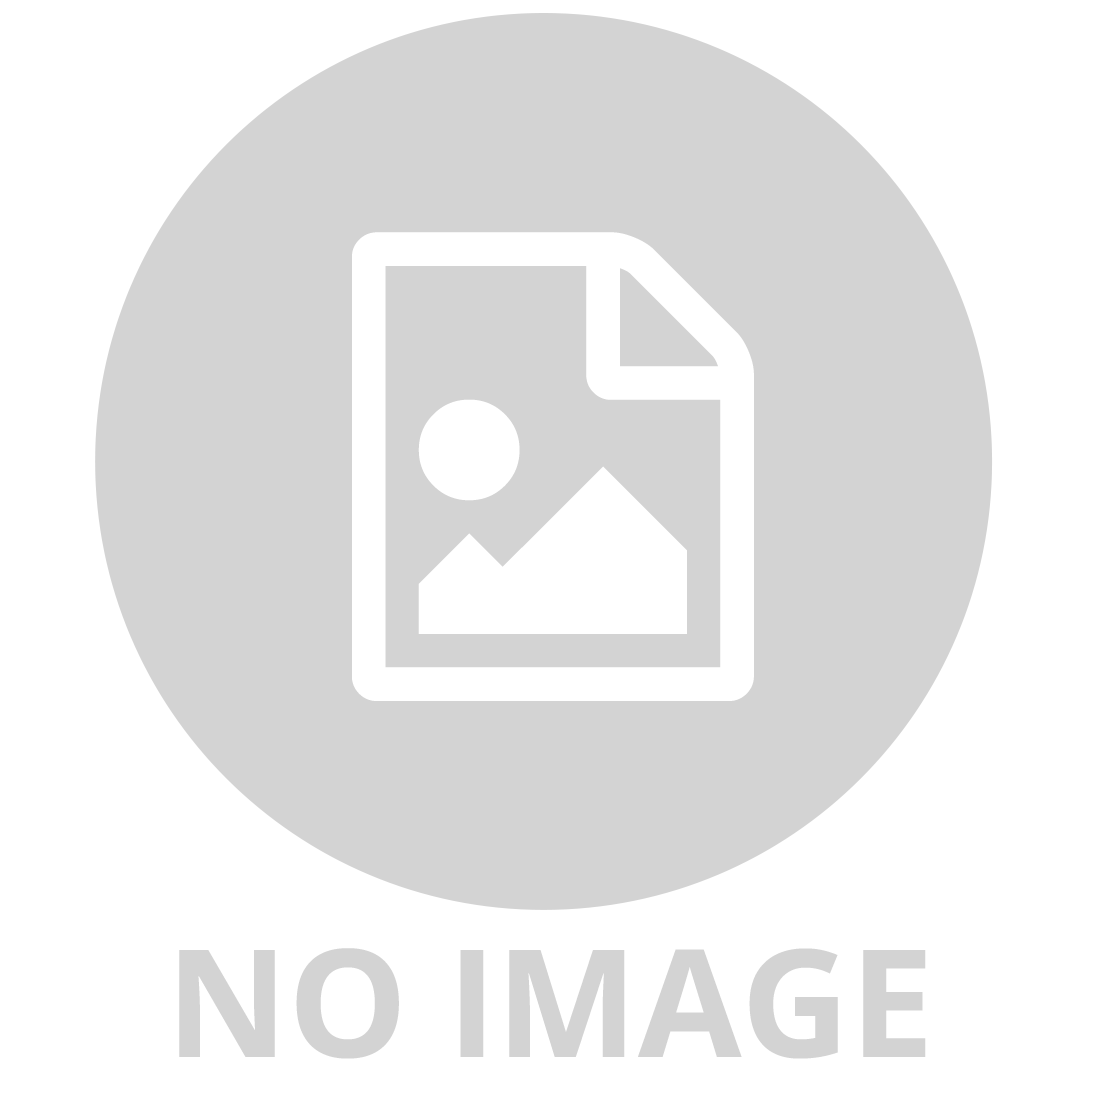 ULTIMATE SPIDER MAN WALKIE TALKIE